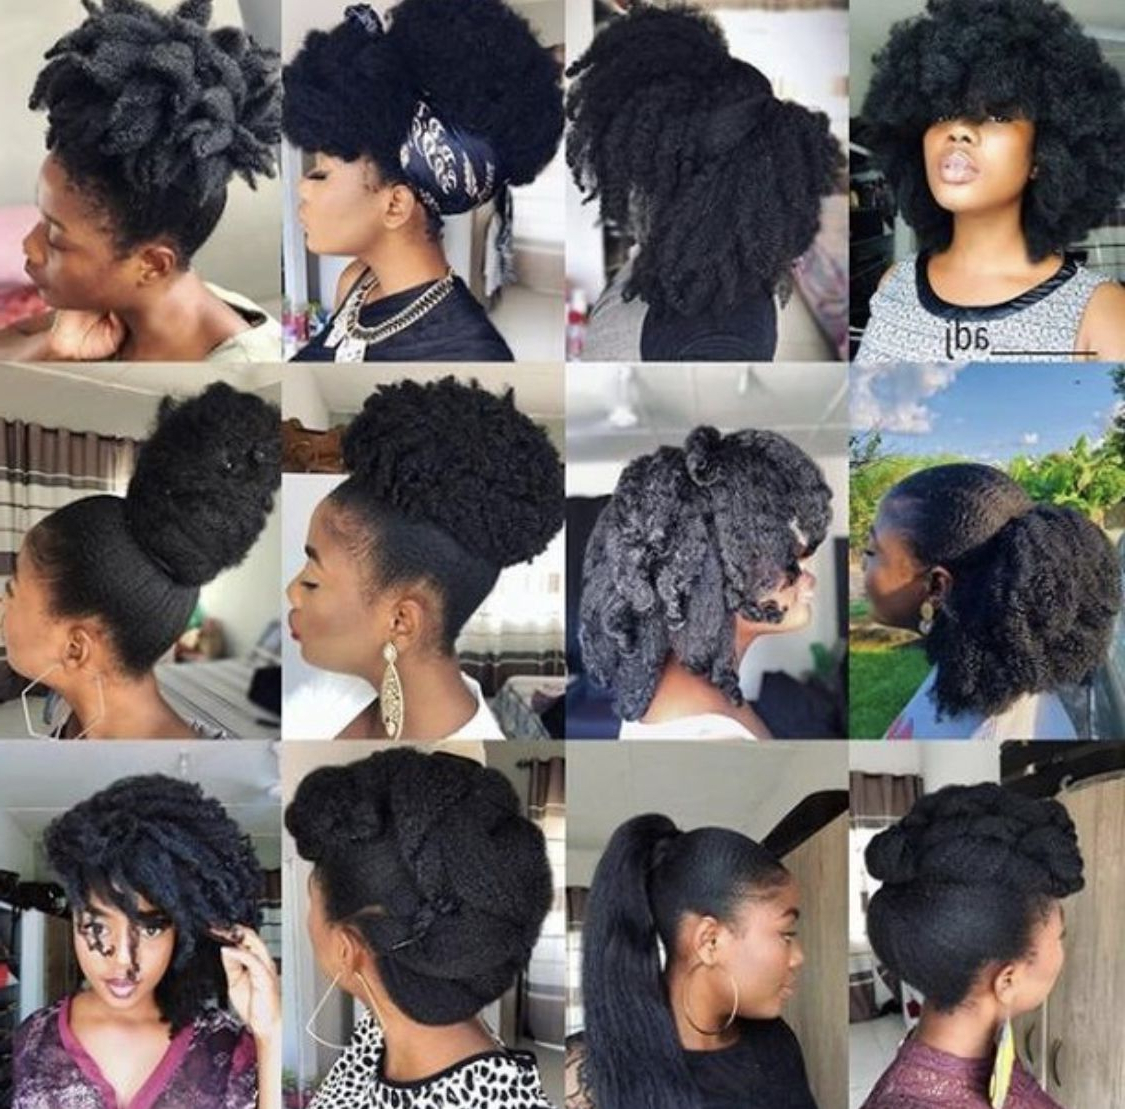 Current Dark Red Highlighted Finger Coils Hairstyles For Ideabeautifully Curled The Diy L On Women Natural (View 11 of 20)